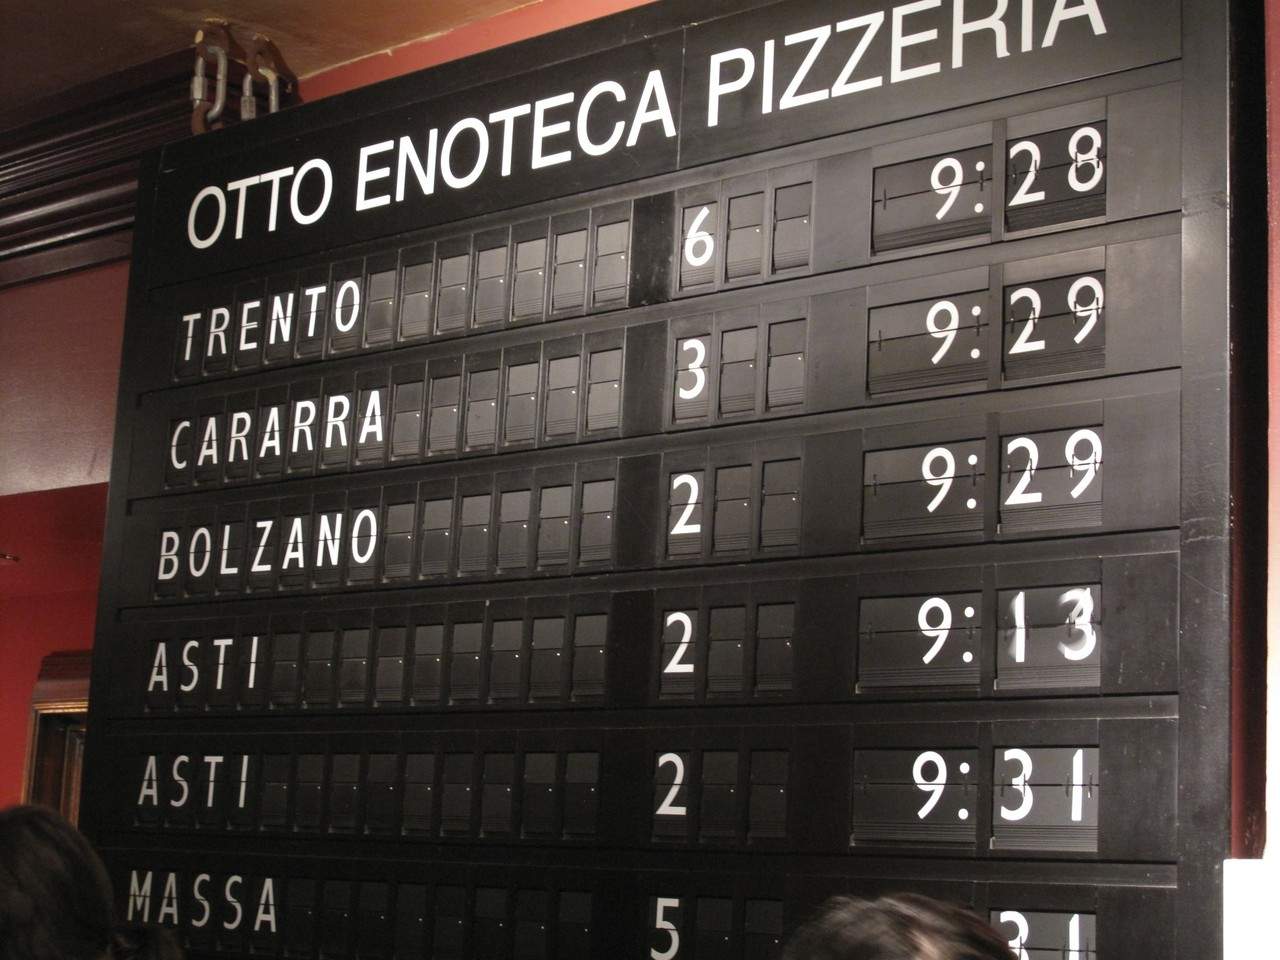 Wait times at Otto Otto Enoteca Pizzeria has an awesome display for how long parties have to wait for tables. Definitely worth checking out if you're in Greenwich Village. http://www.ottopizzeria.com/home.cfm